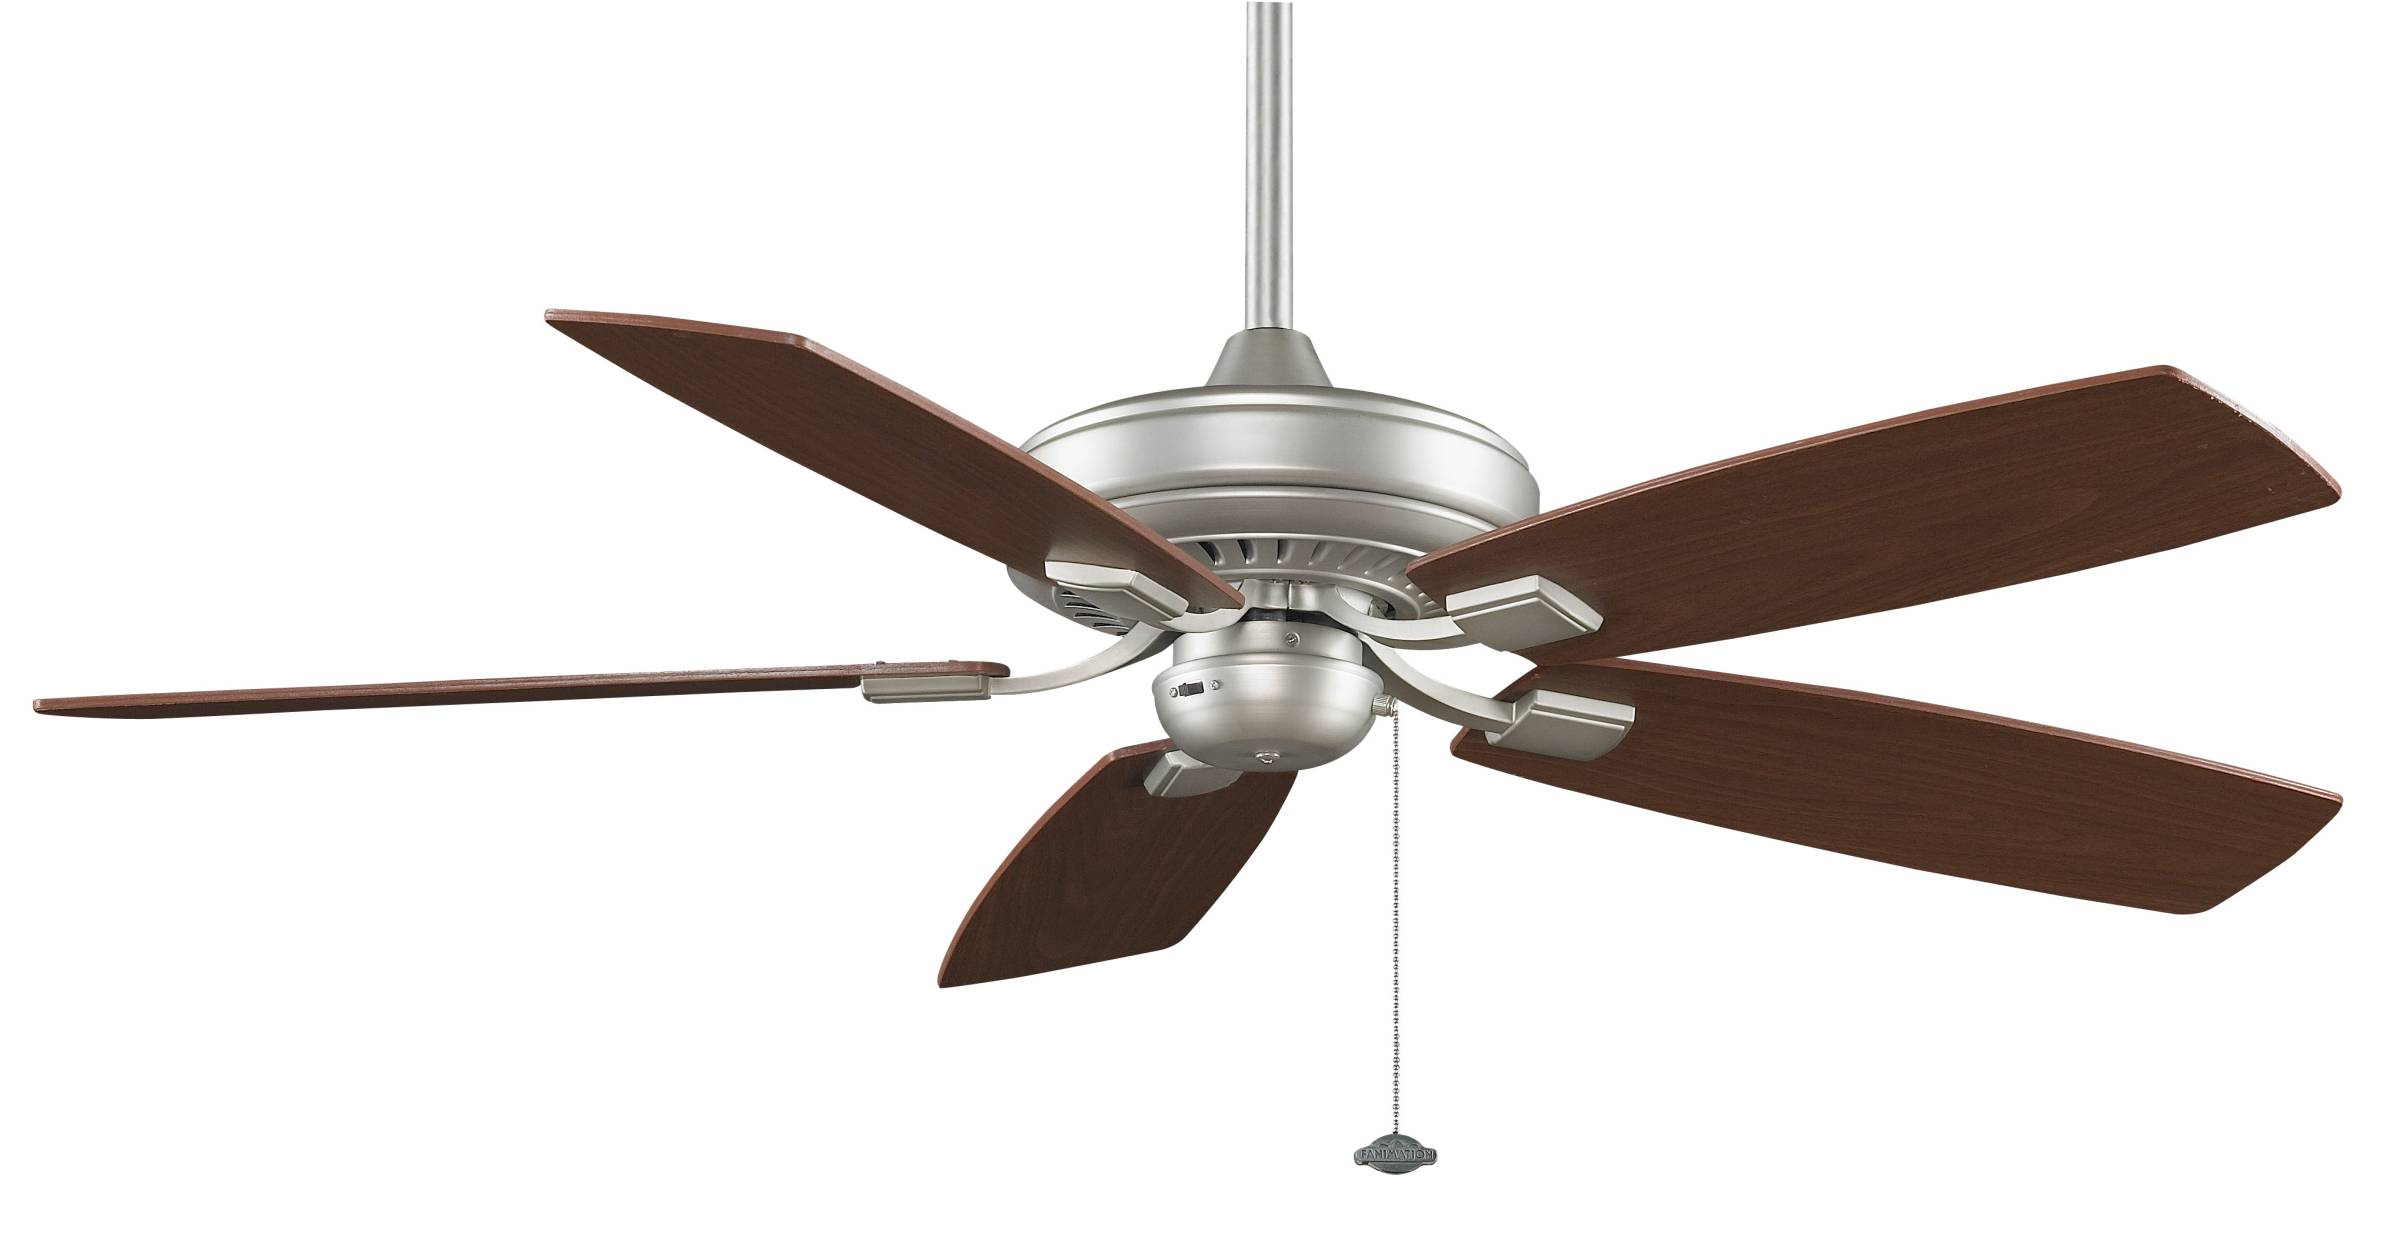 Carousel ceiling fan purify air and bring beauty to your home